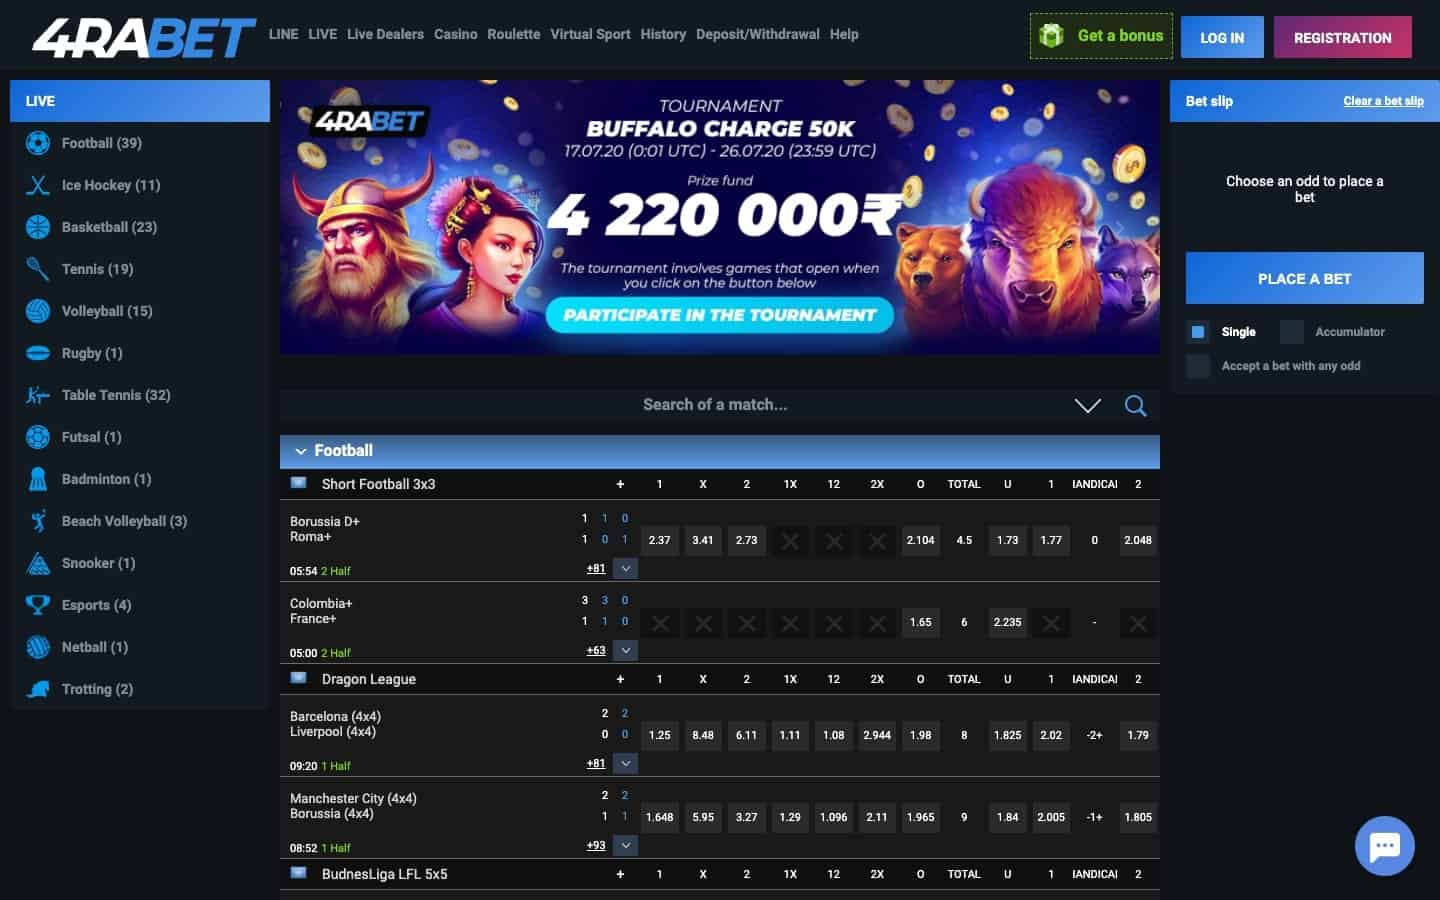 4Rabet Casino review - Website